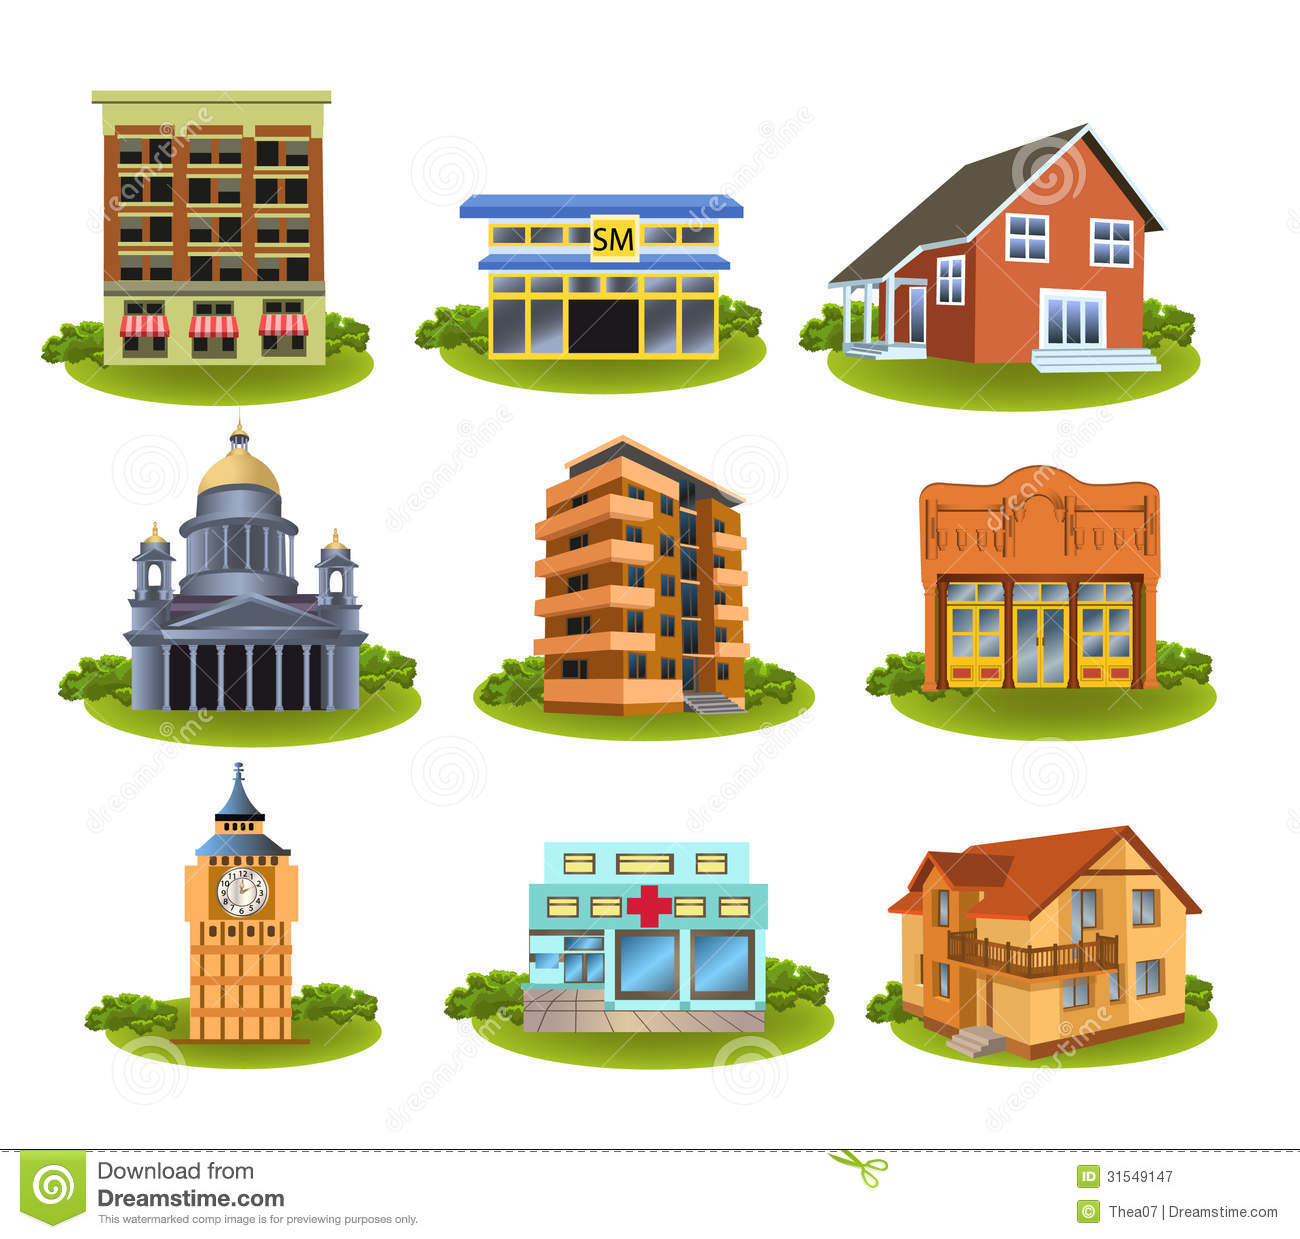 Places clipart different Places Public Places community clip